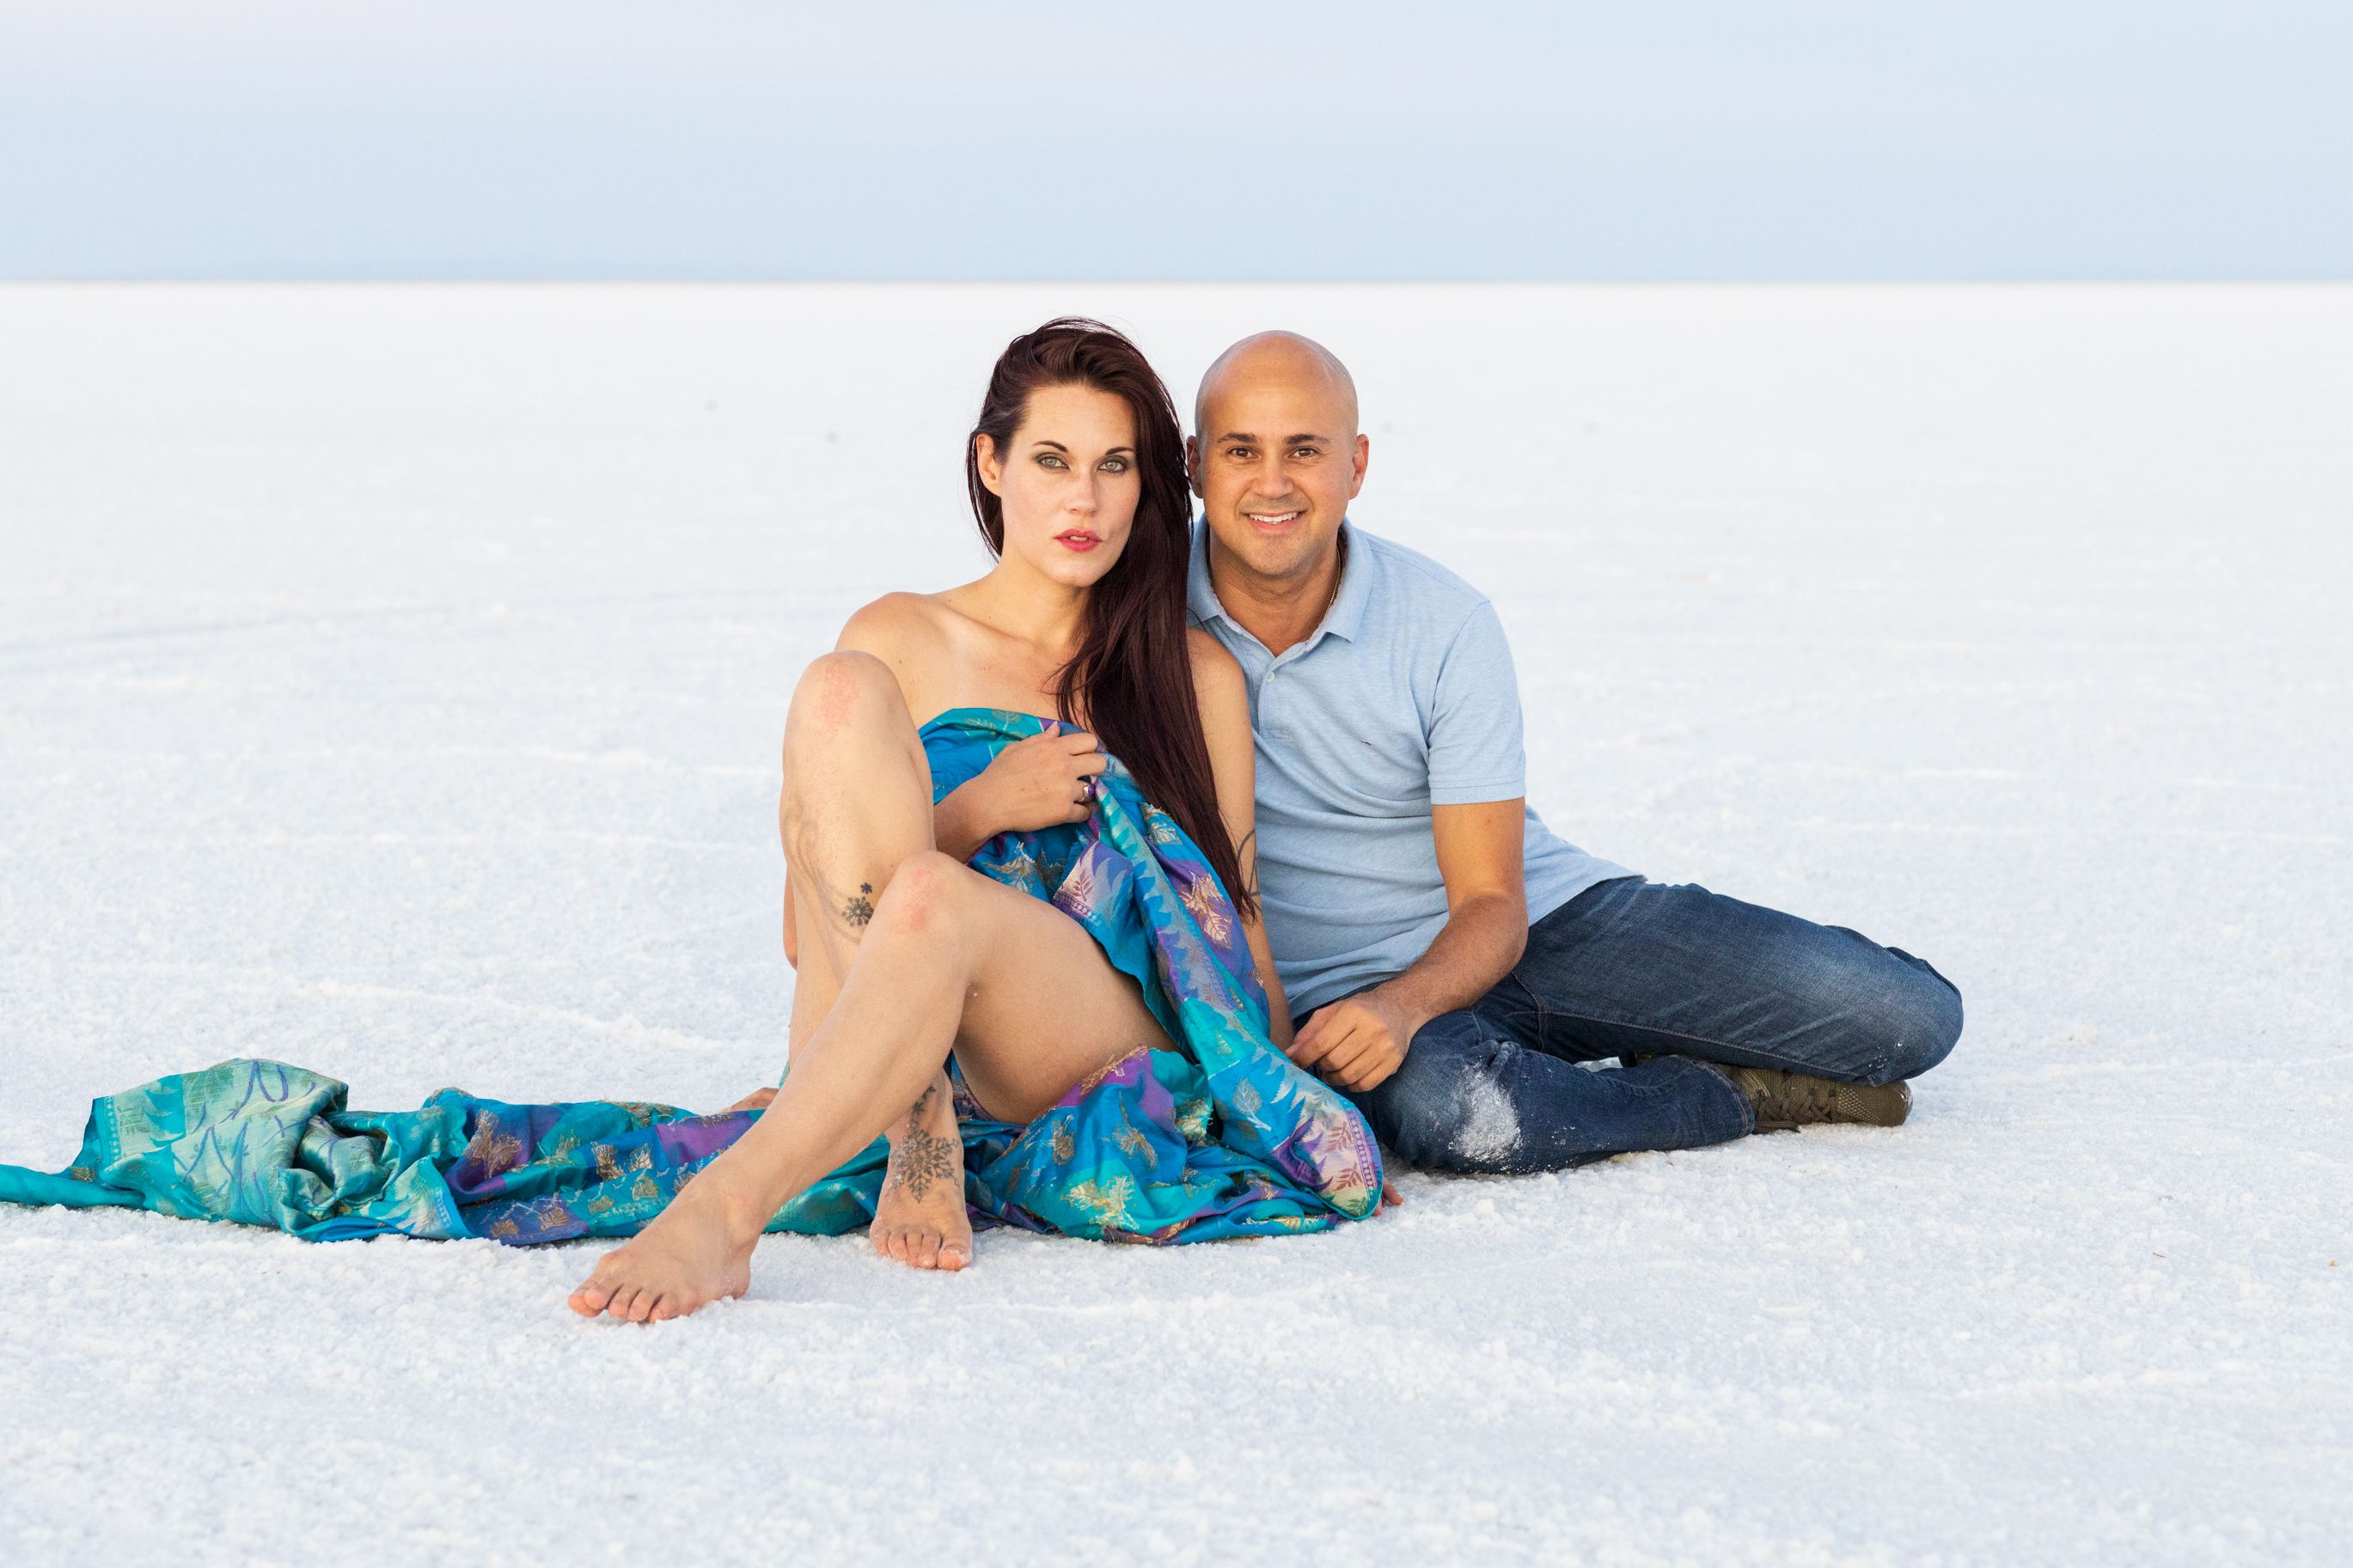 Teal Swan with Cassio Habib